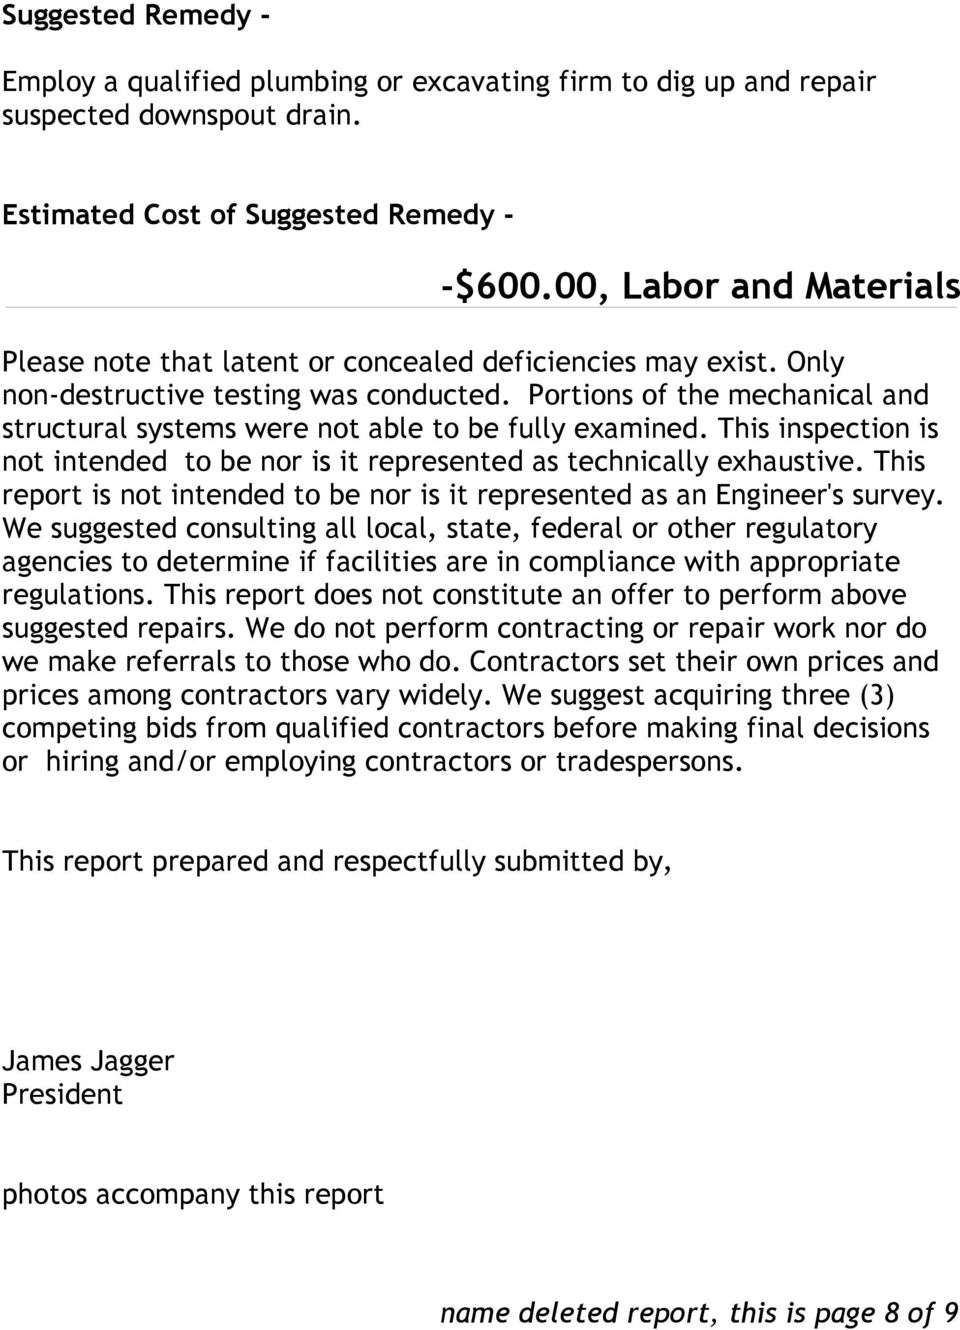 This inspection is not intended to be nor is it represented as technically exhaustive. This report is not intended to be nor is it represented as an Engineer's survey.